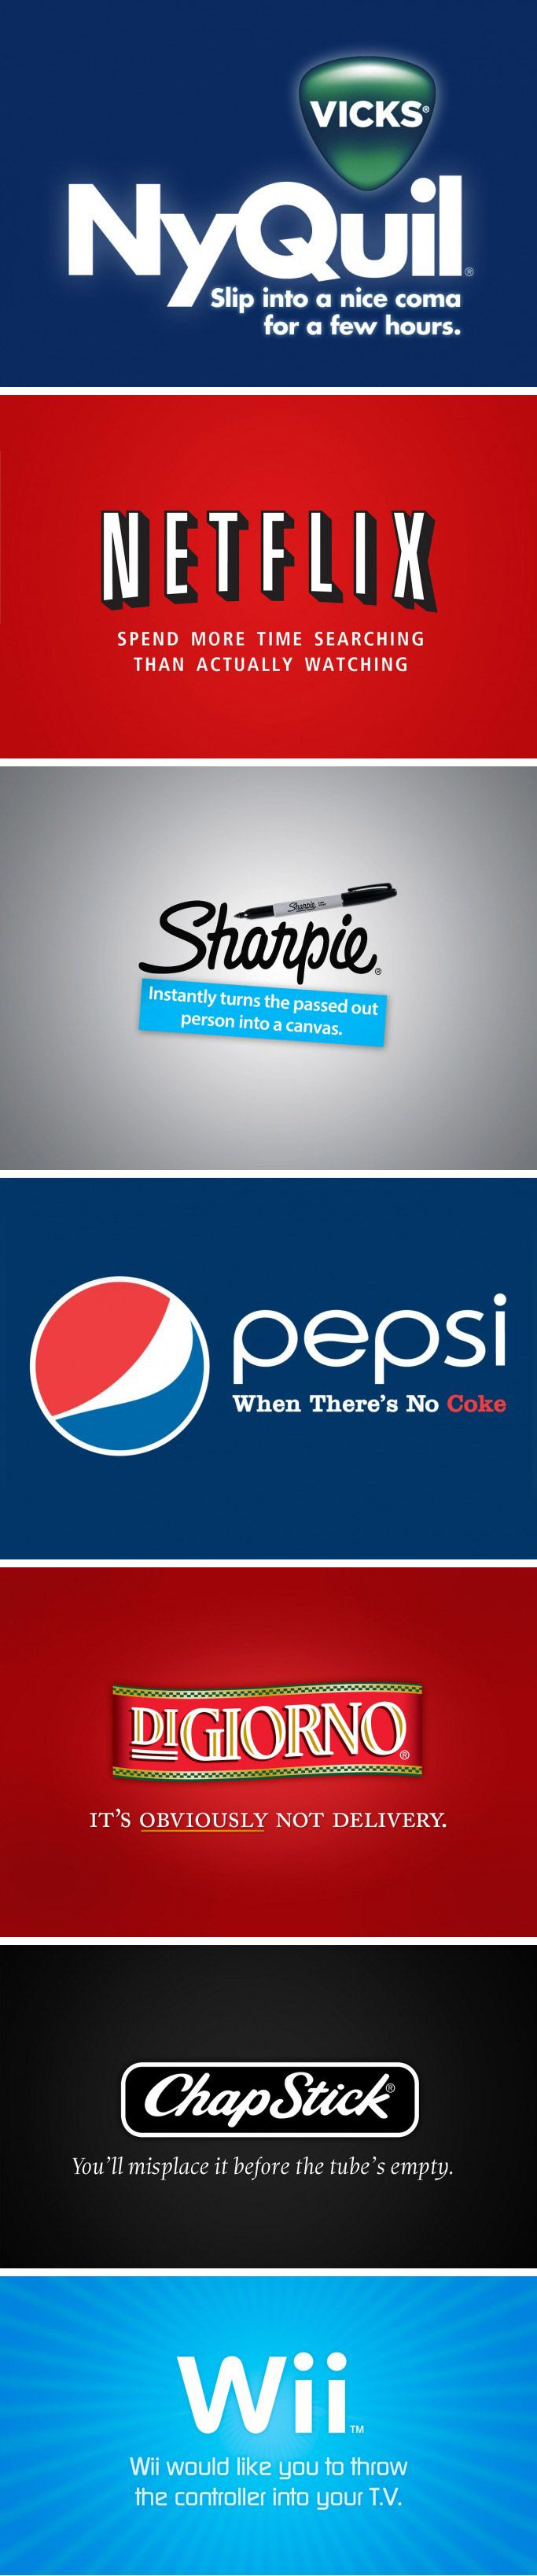 Honest slogans of popular brands. So accurate, especially the Pepsi one.